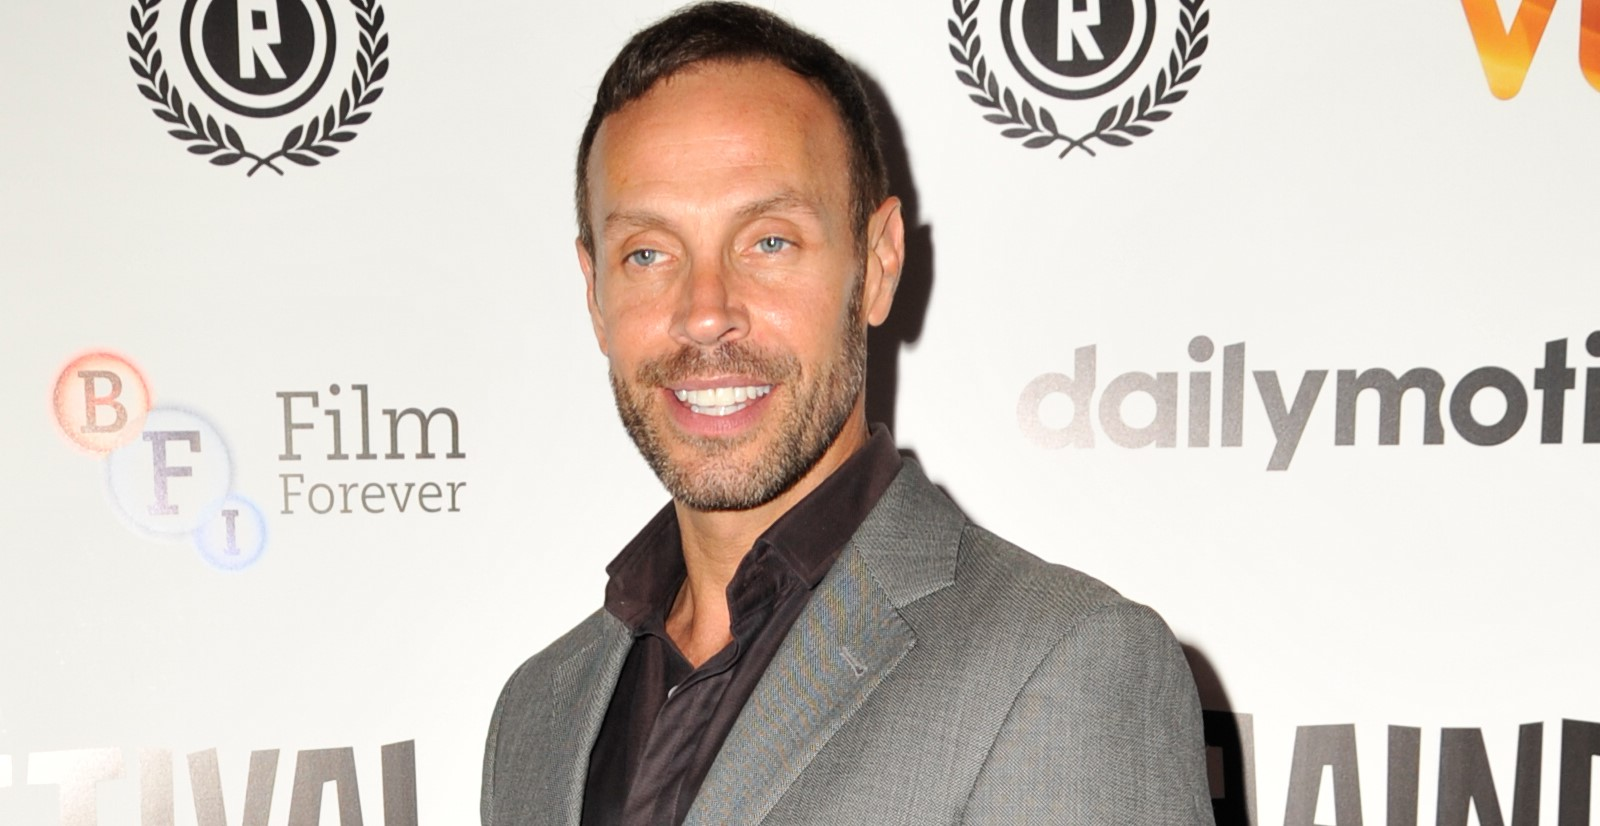 Jason Gardiner throws shade at ITV over Dancing On Ice's same-sex couples